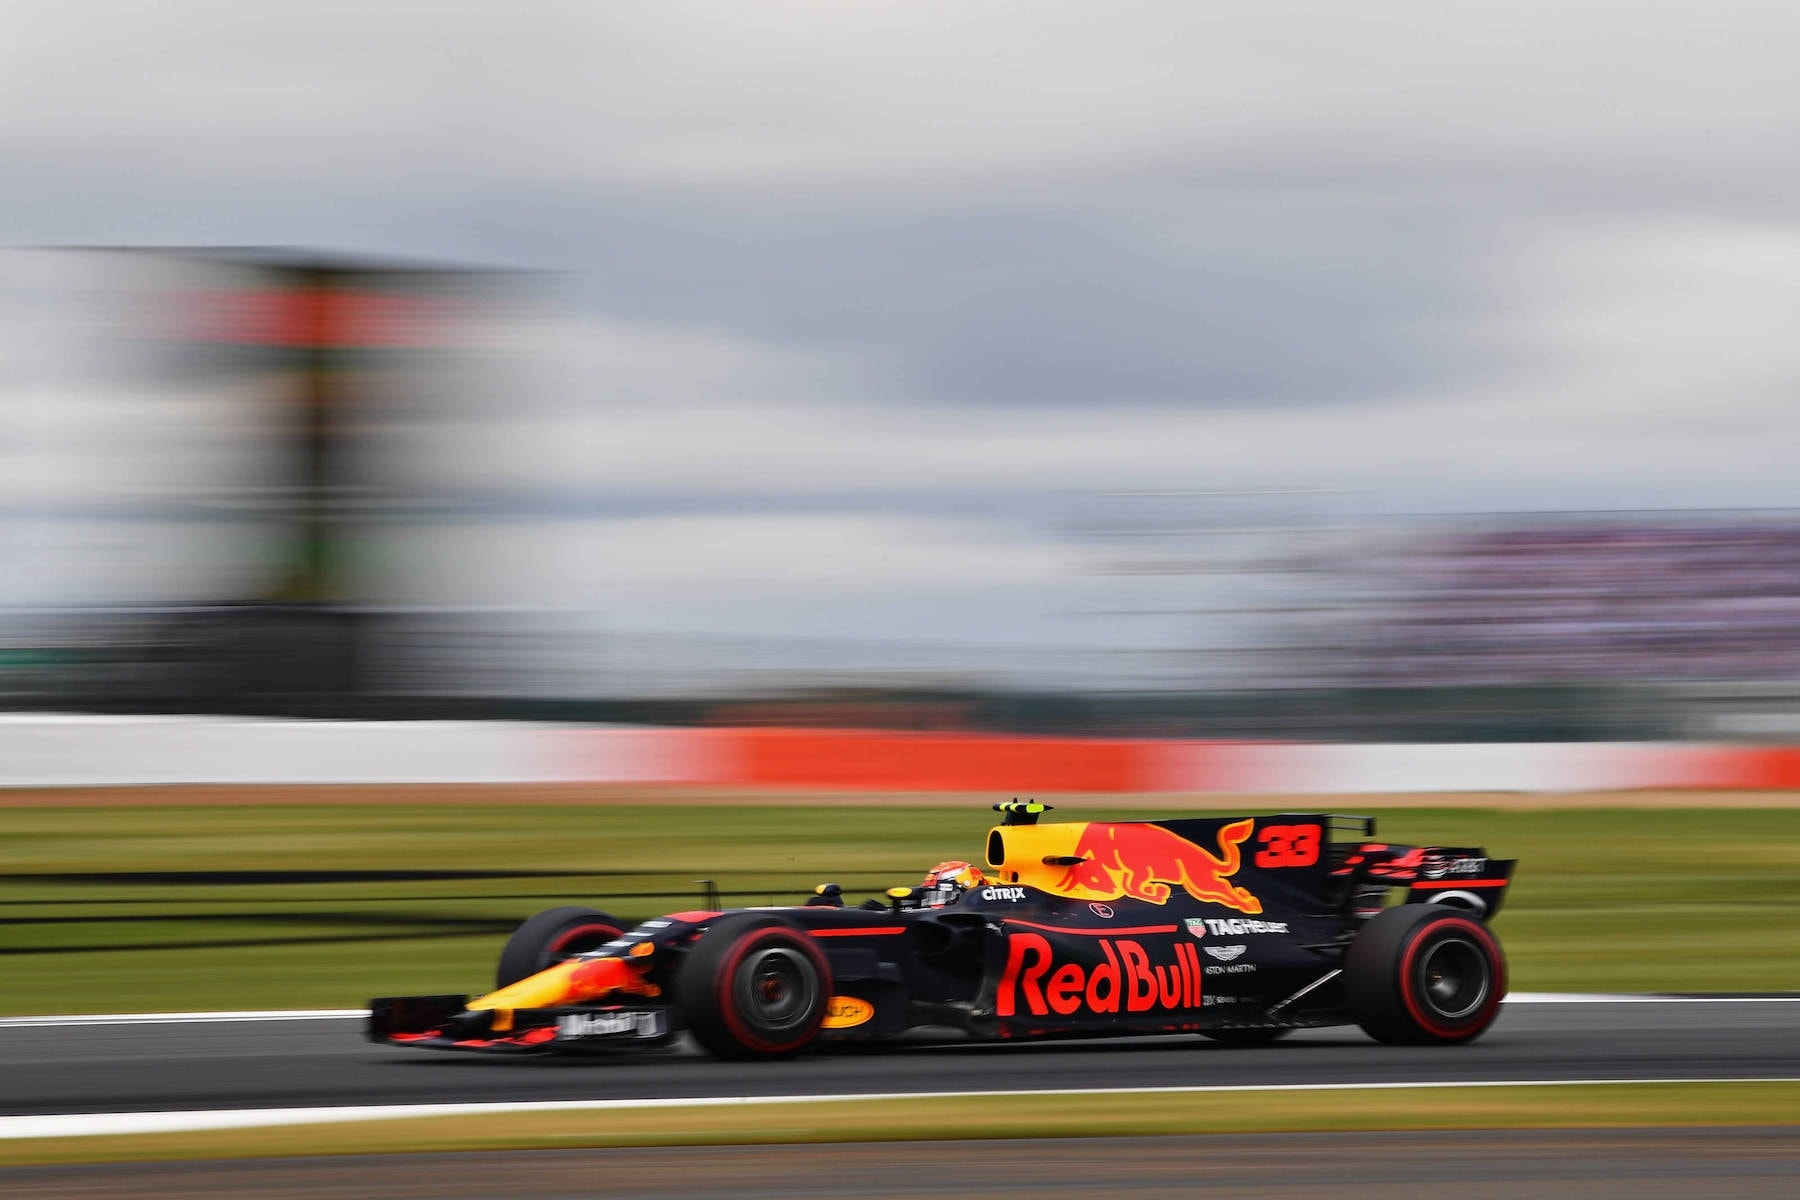 G 2017 Max Verstappen | Red Bull RB13 | 2017 British GP P4 1 copy.jpg